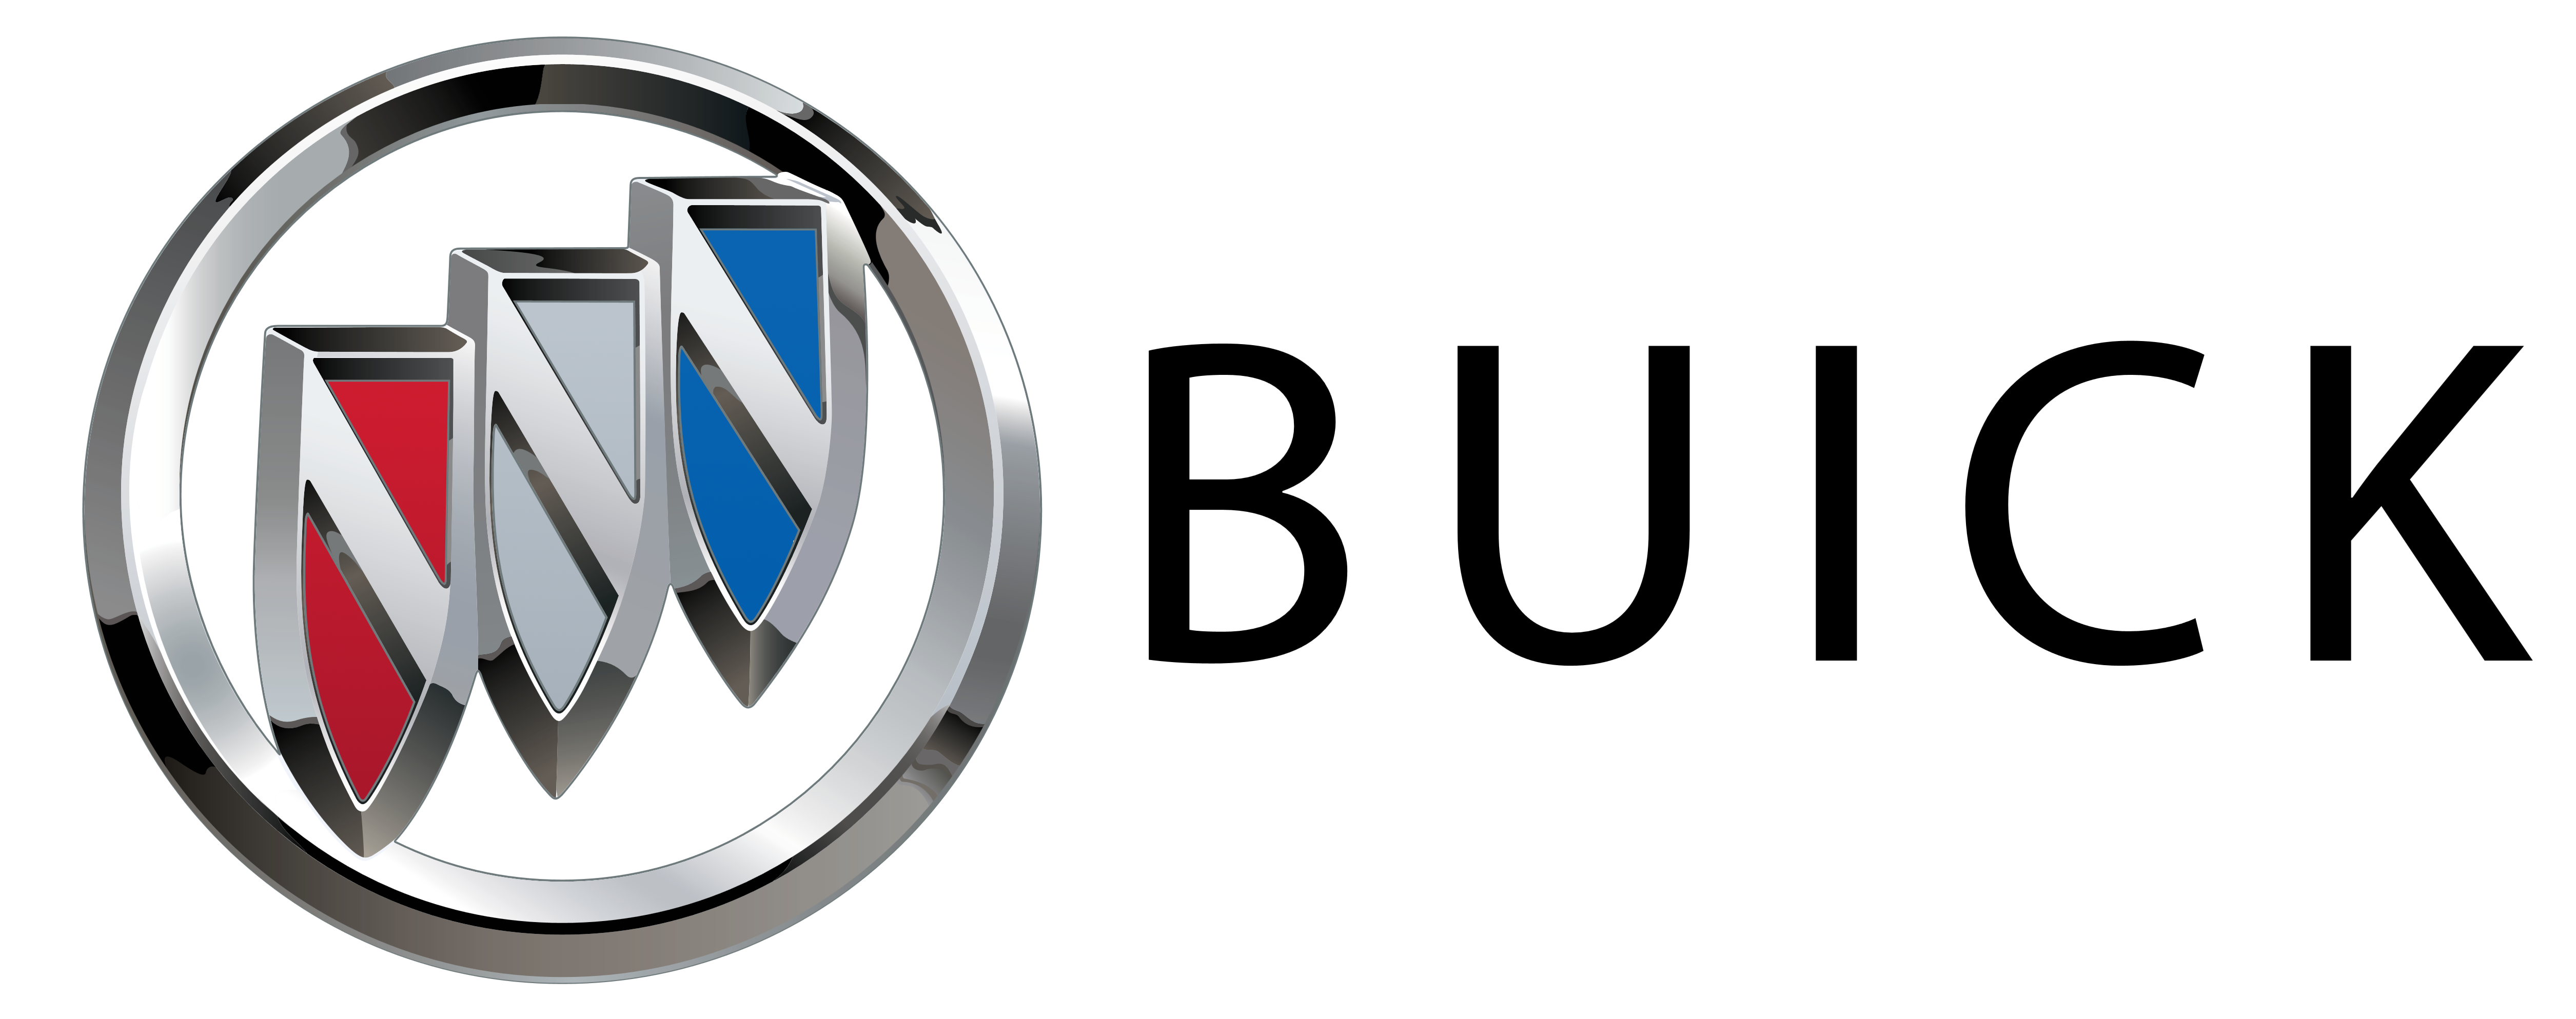 Buick Logos Download